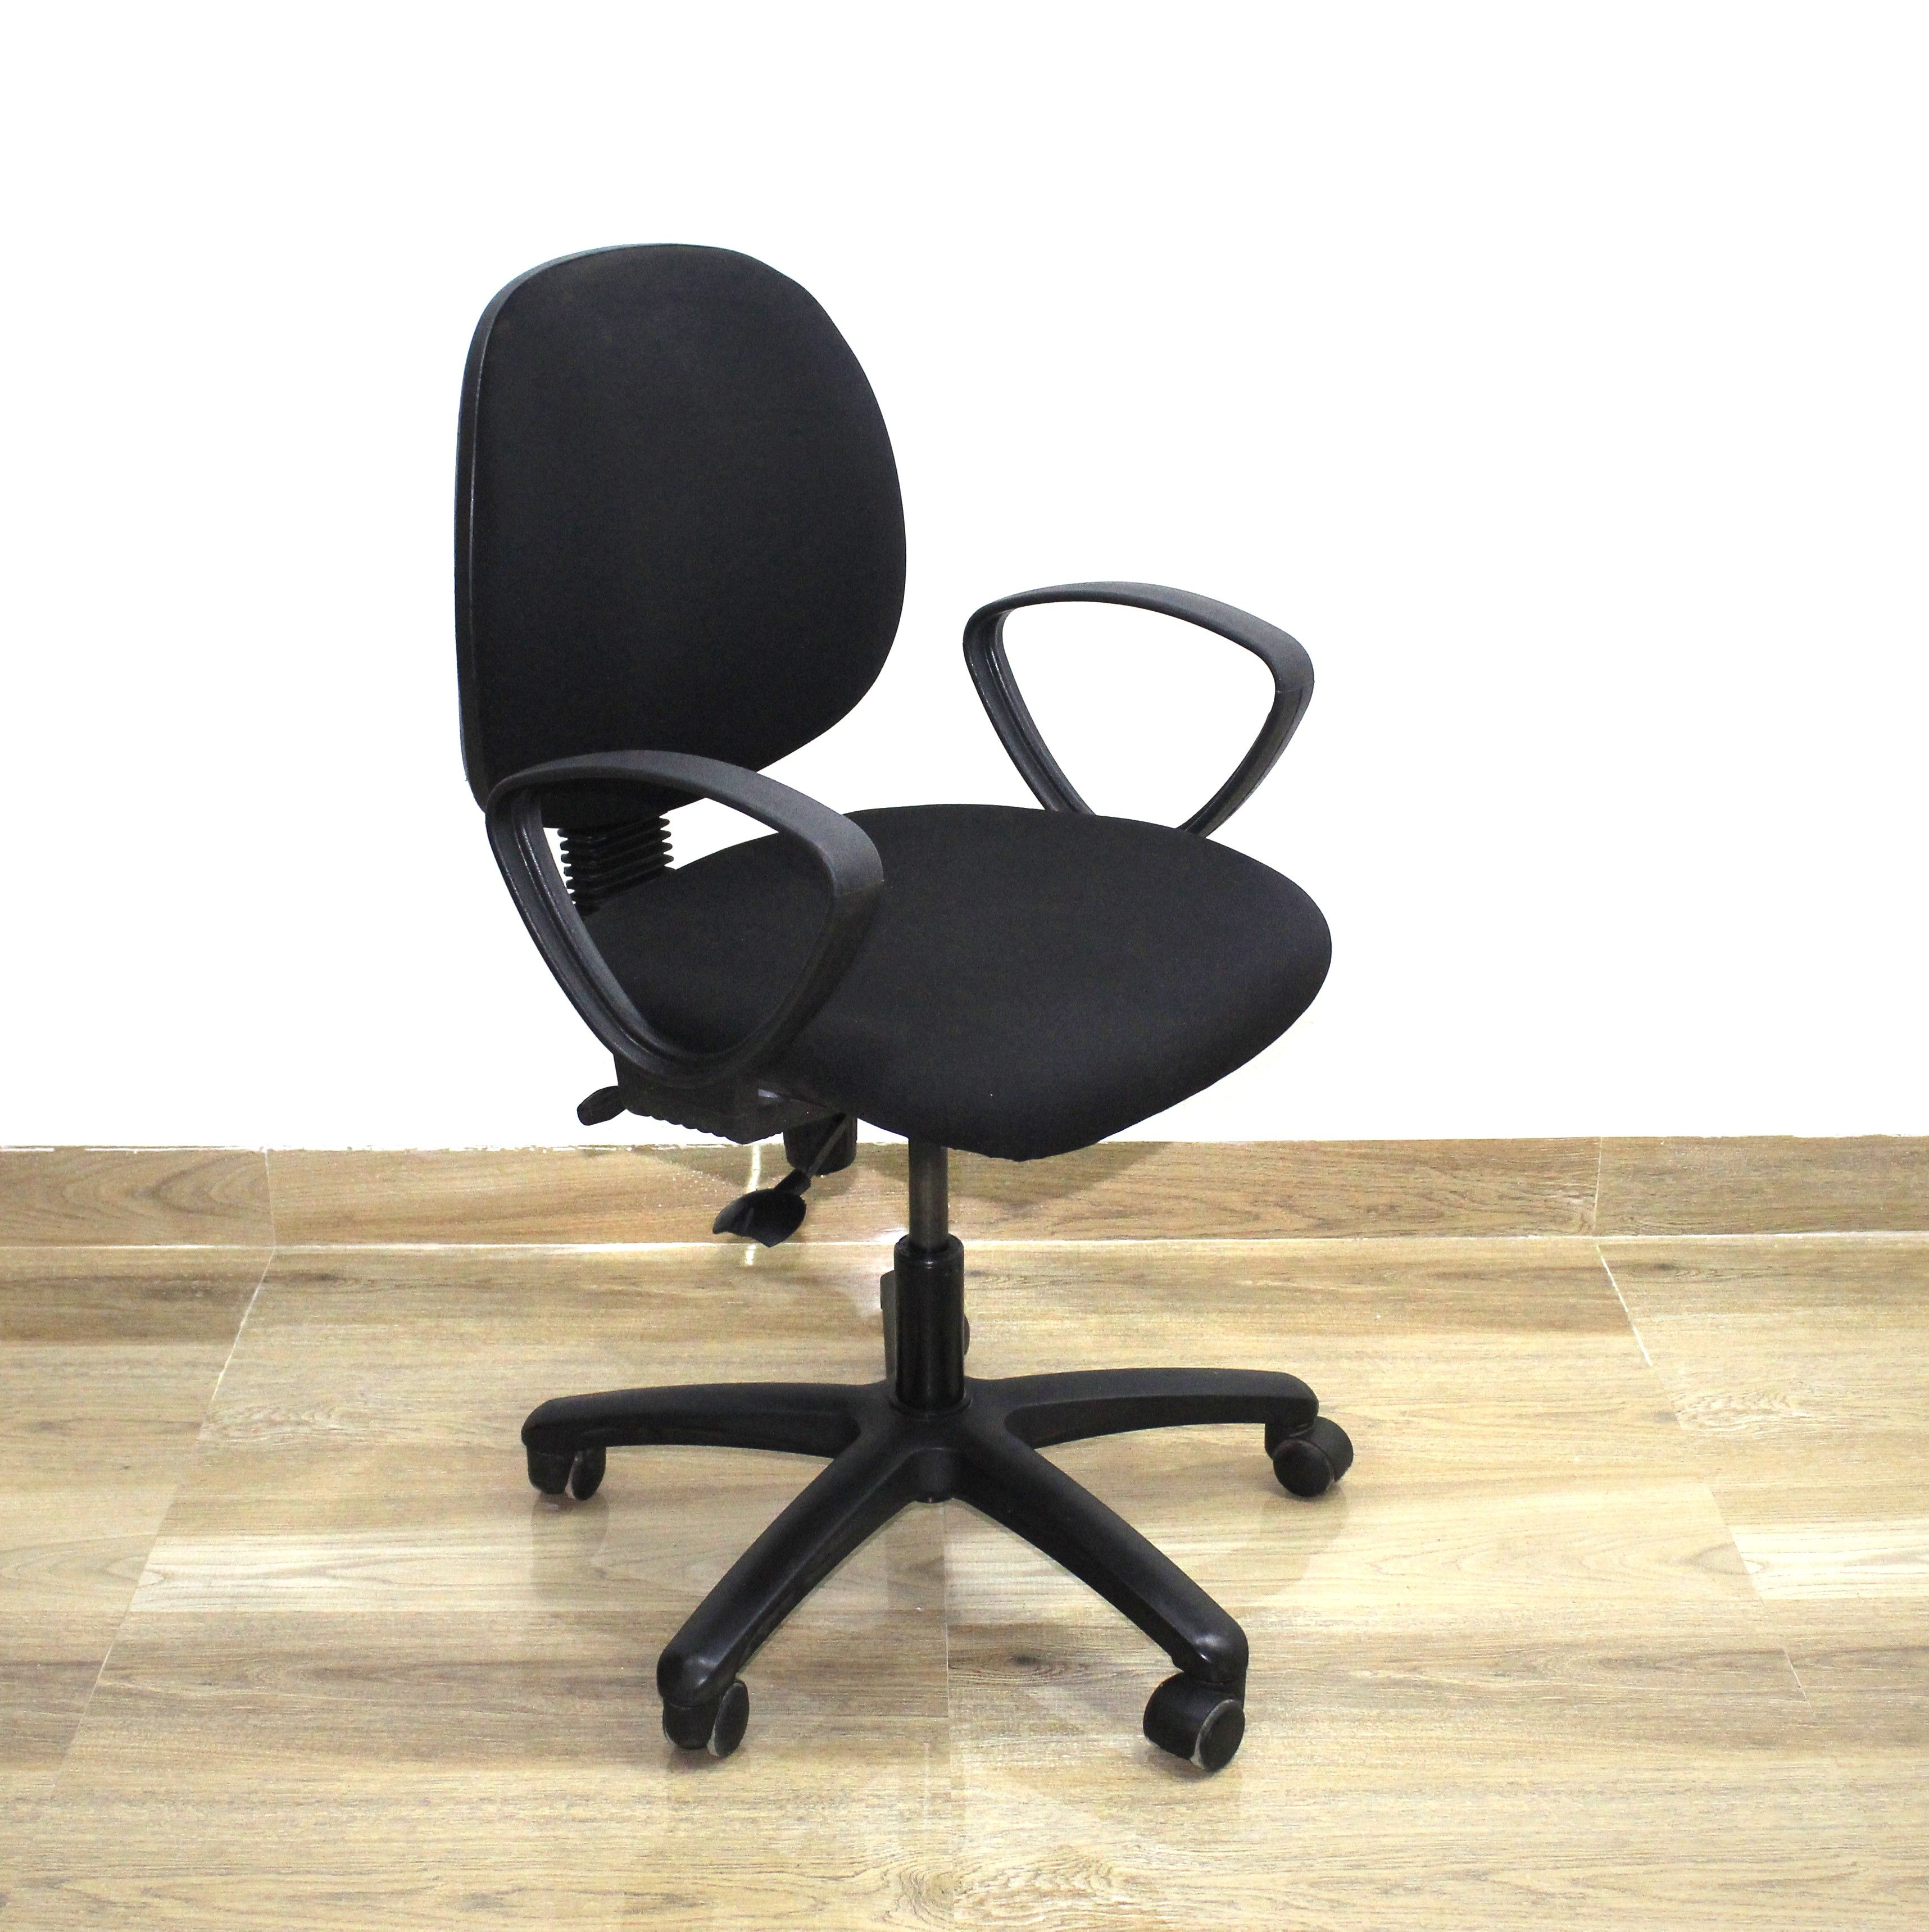 revolving chair second hand white wingback arbour best place to buy used office rotating chairs or online at factory price